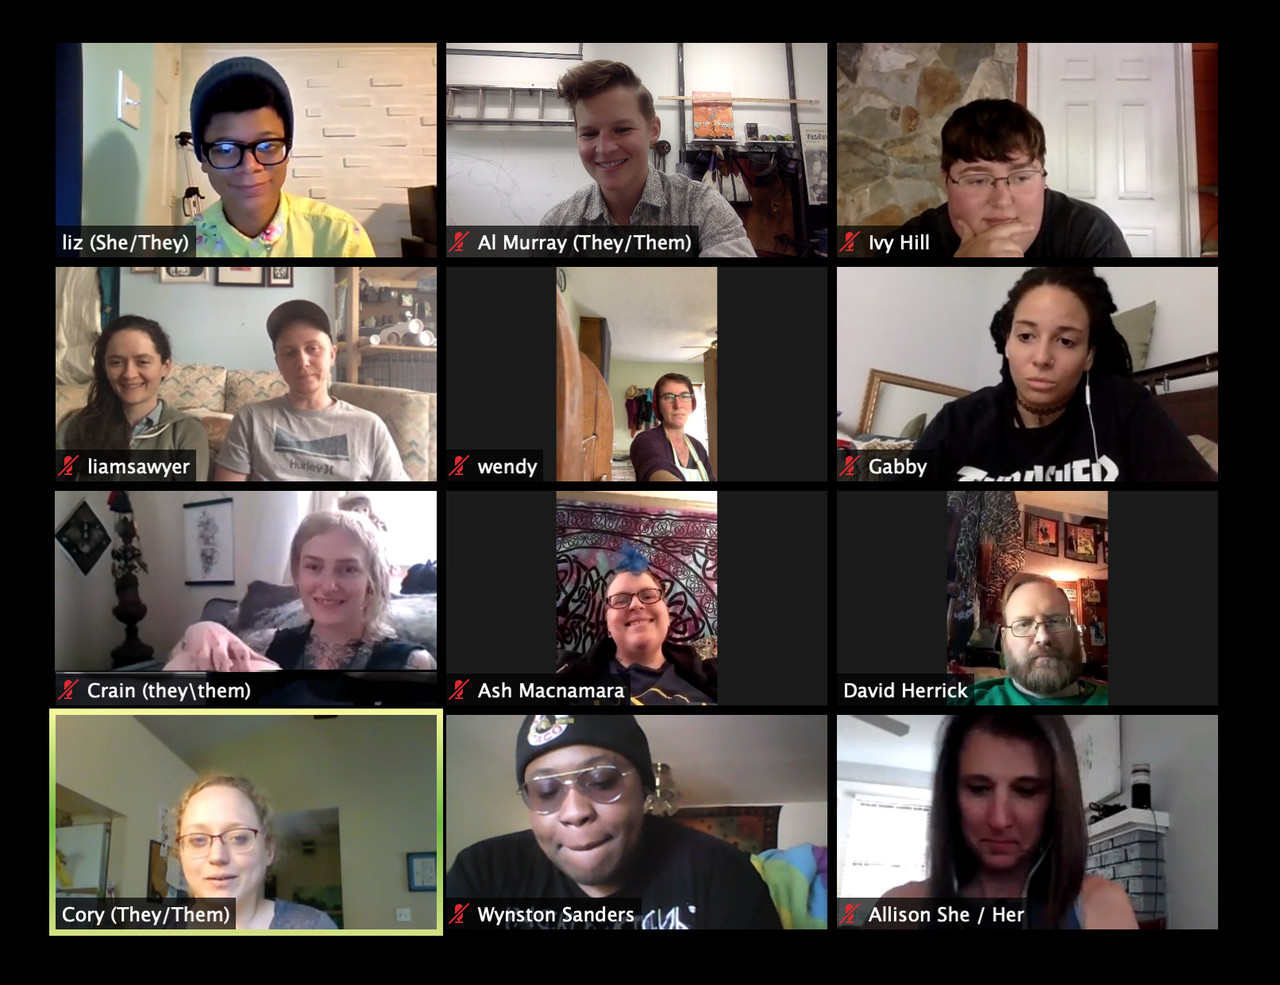 A screenshot of a virtual meetup.